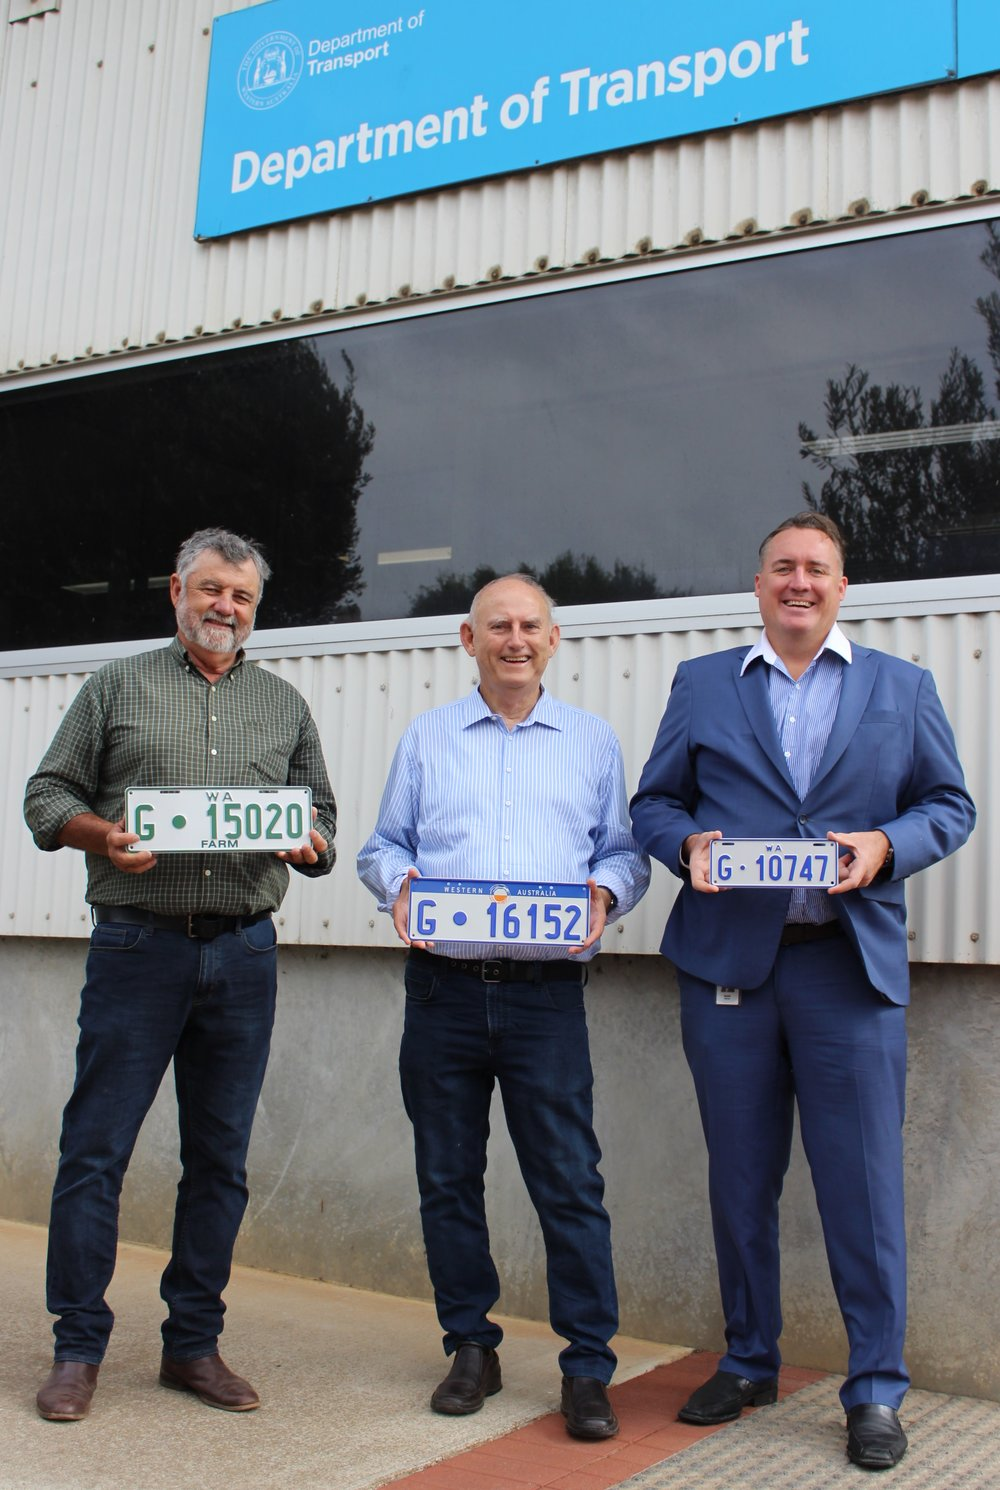 City of Greater Geraldton Councillor Jerry Clune (from left), Agricultural Region MLC Laurie Graham and Mayor Shane Van Styn with reintroduced 'G' plates.